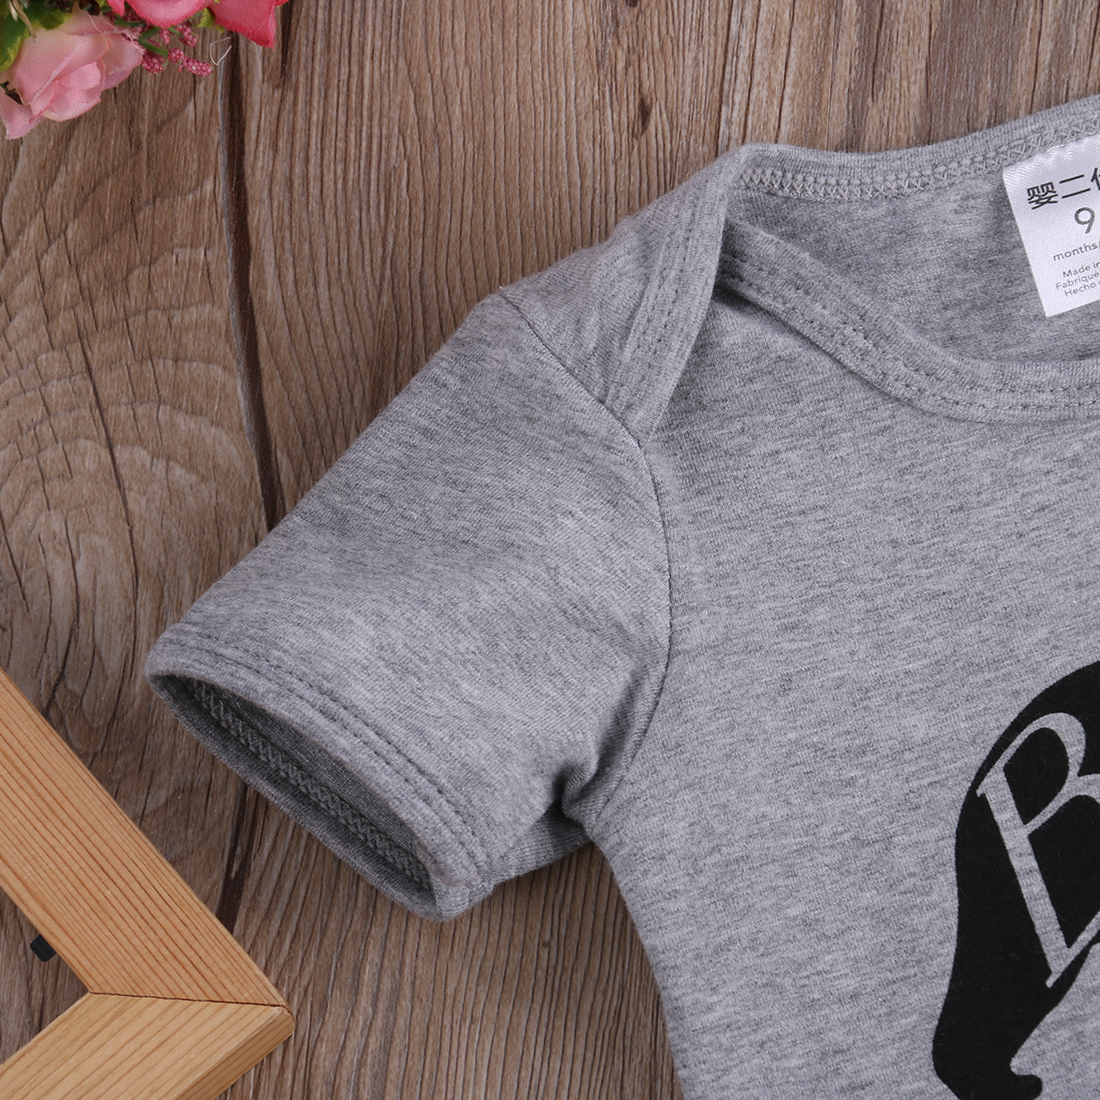 2017 New Mom And Baby Clothes Mama Bear Tshirt Tee Babies Onesie N Bab Vest Grey Size 6t Bodysuit Family Matching Clothing Set In T Shirts From Mother Kids On